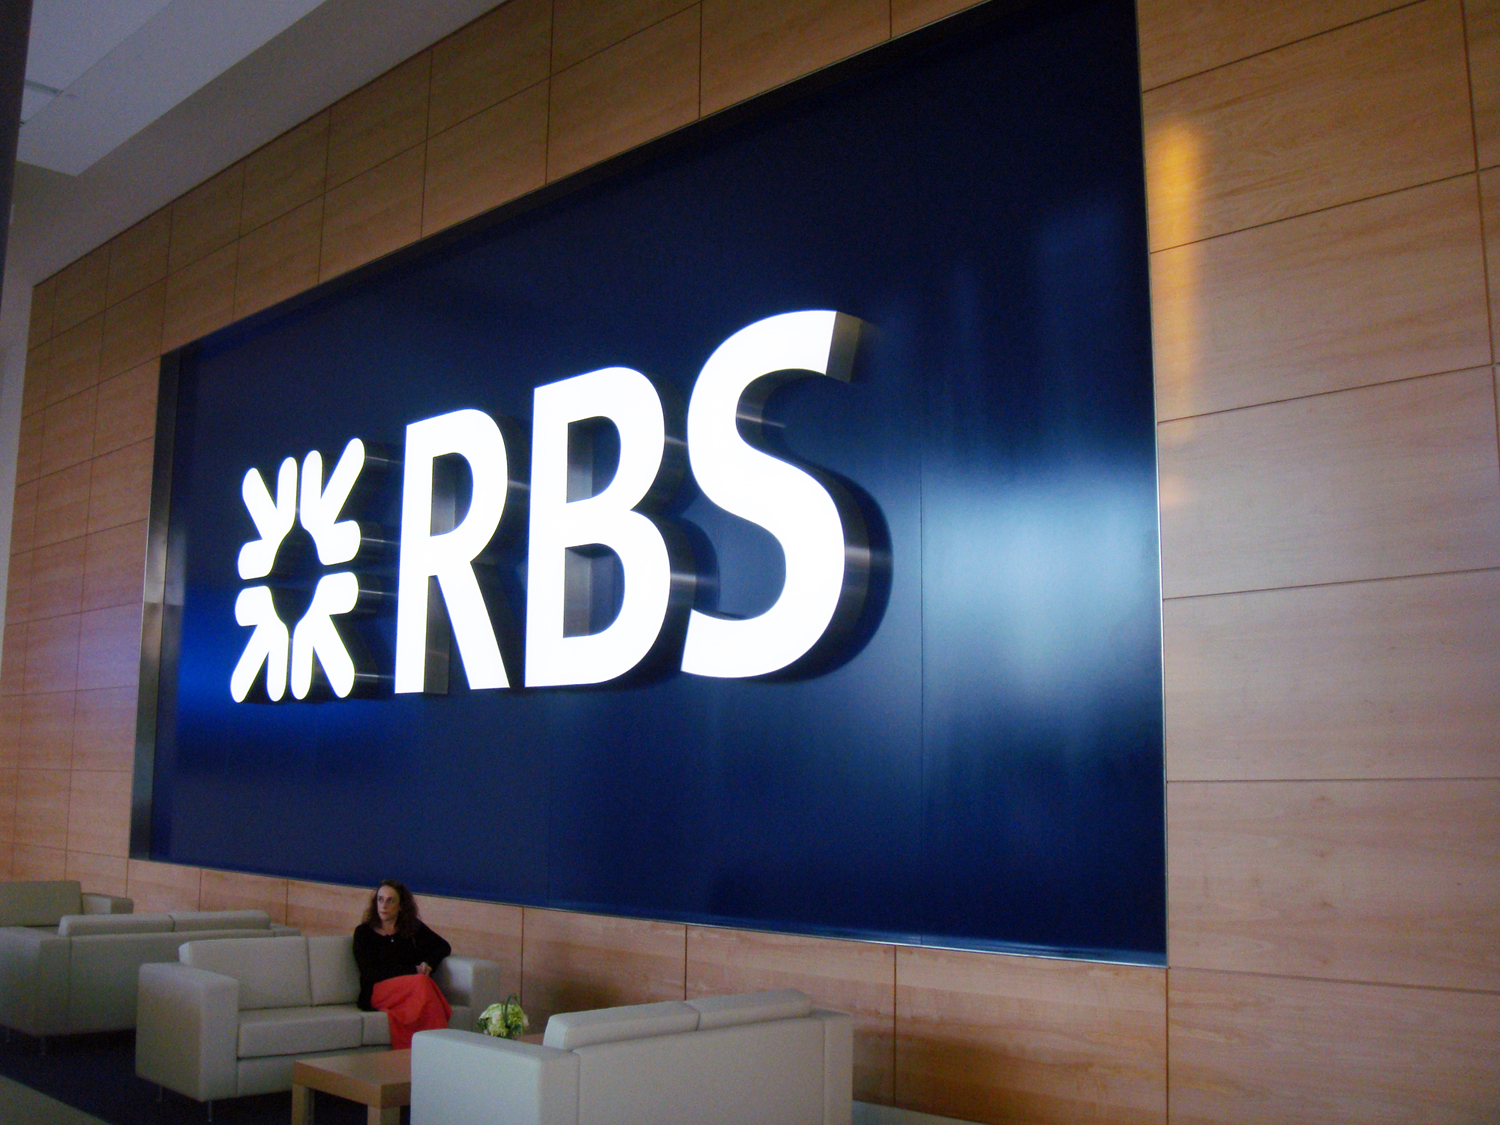 Project image 2 for Signage and Architectural Graphics, RBS / Royal Bank of Scotland